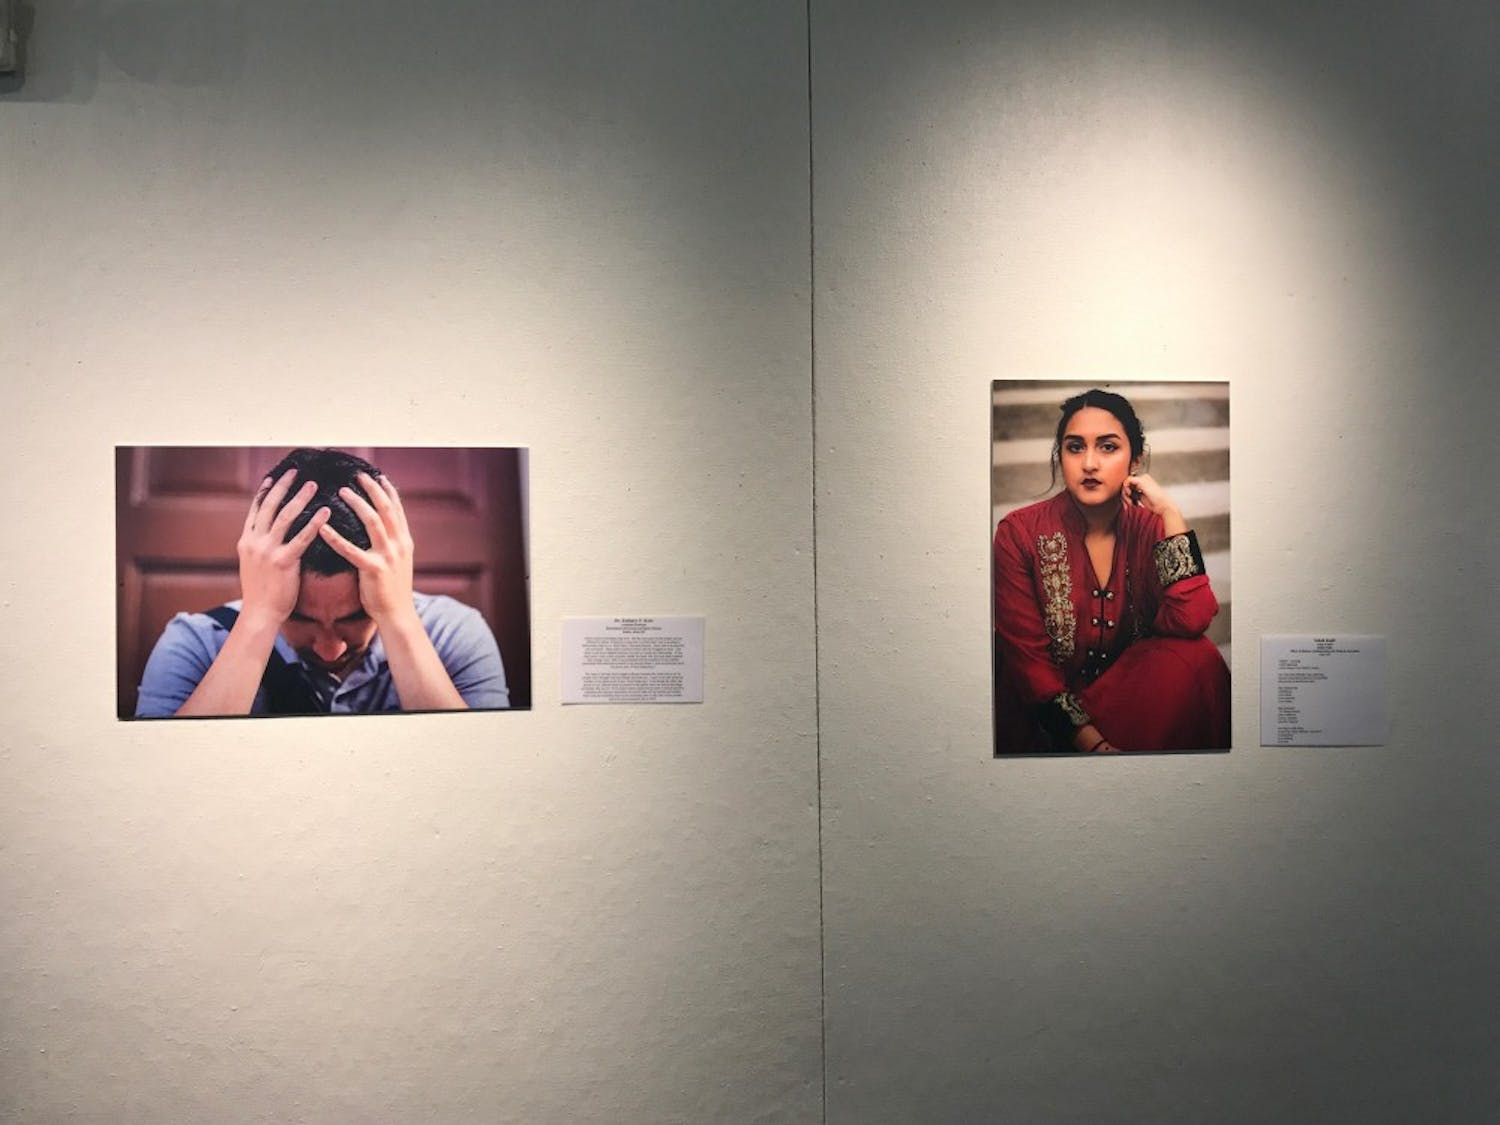 Danielle Nicholson graduated this year with a Bachelors Degree in Exercise and Sports Science and created this photo gallery so that people from different intersecting identities and marginalized groups can tell their stories.